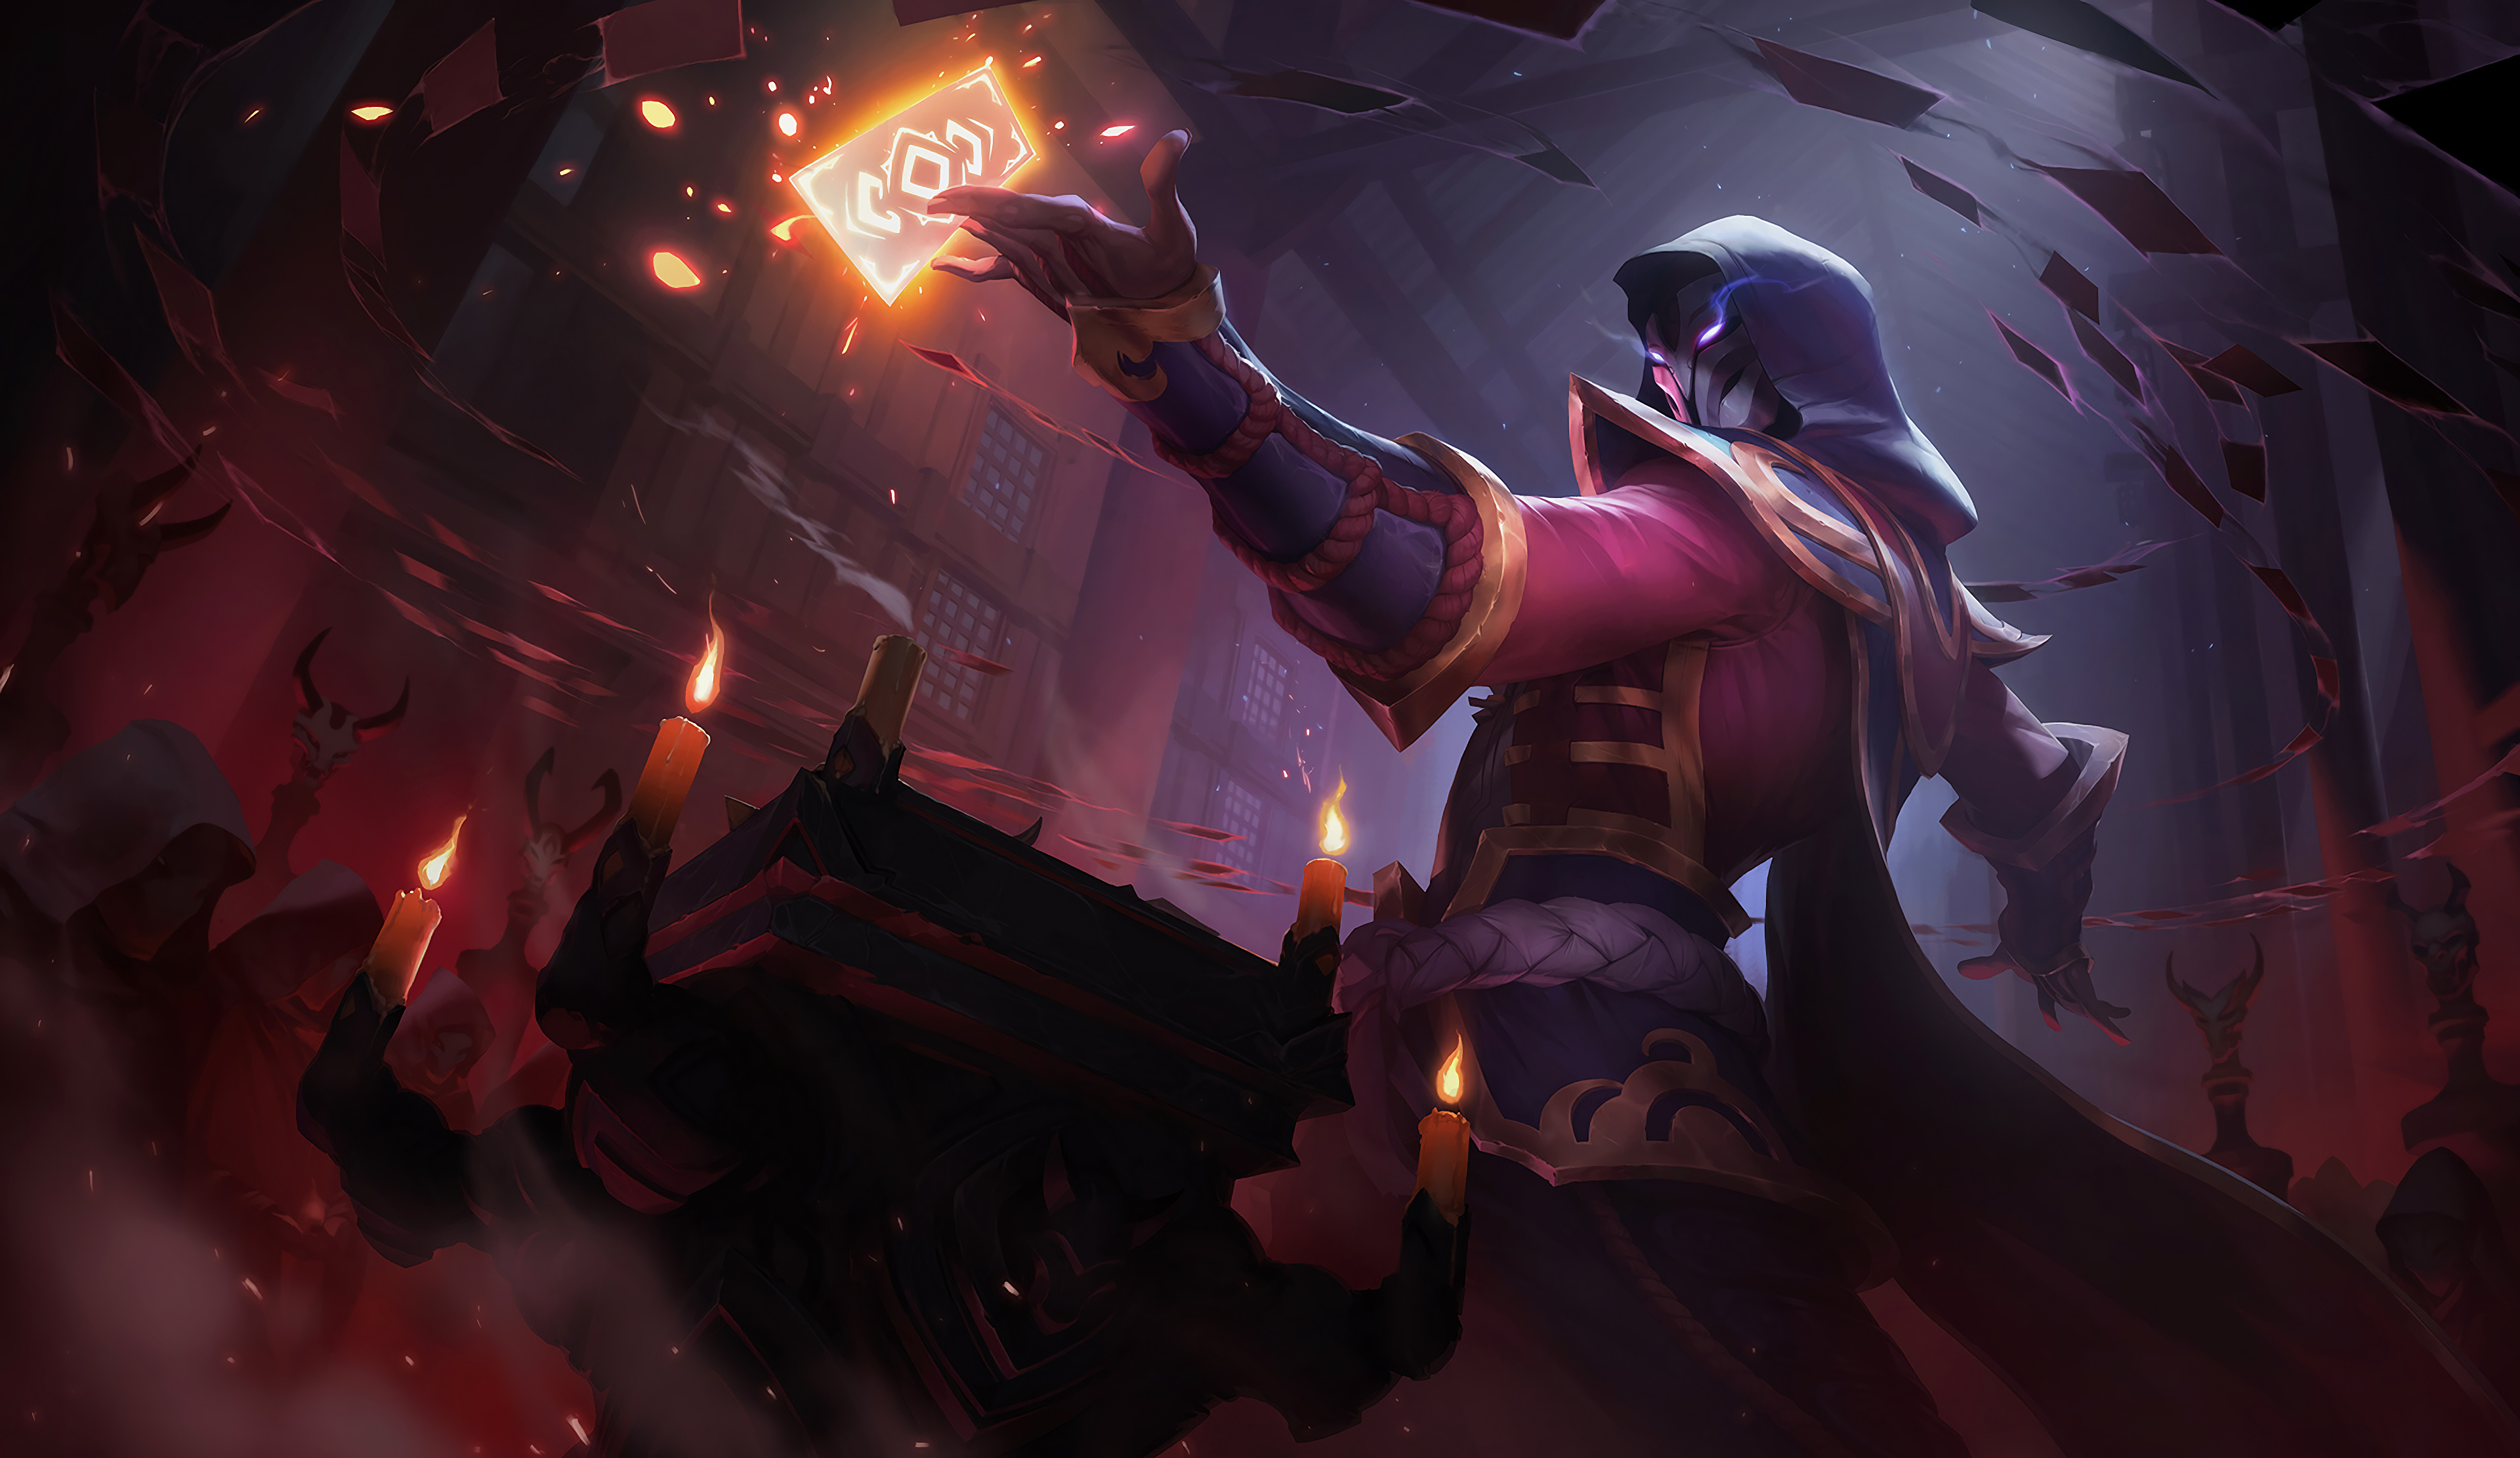 43 Twisted Fate League Of Legends Hd Wallpapers Background